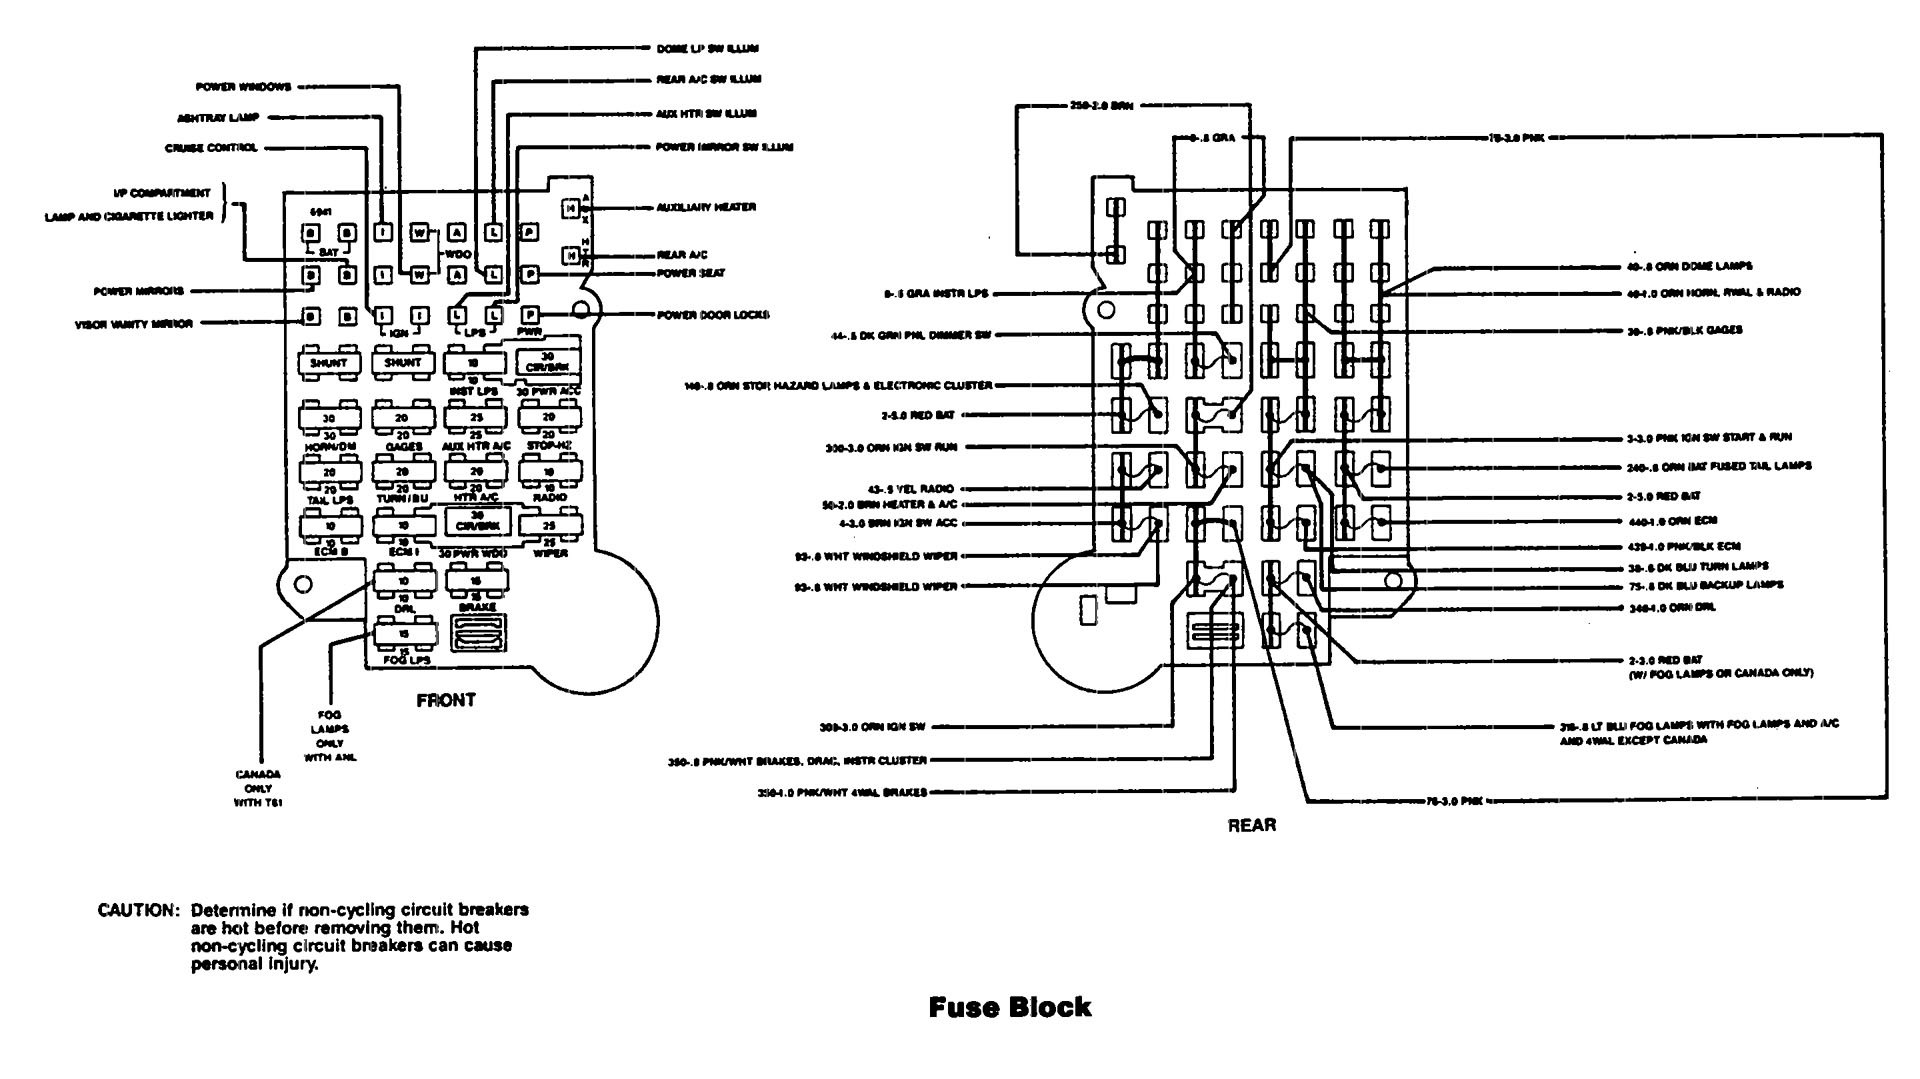 chevrolet astro  1991  - wiring diagrams - fuse box